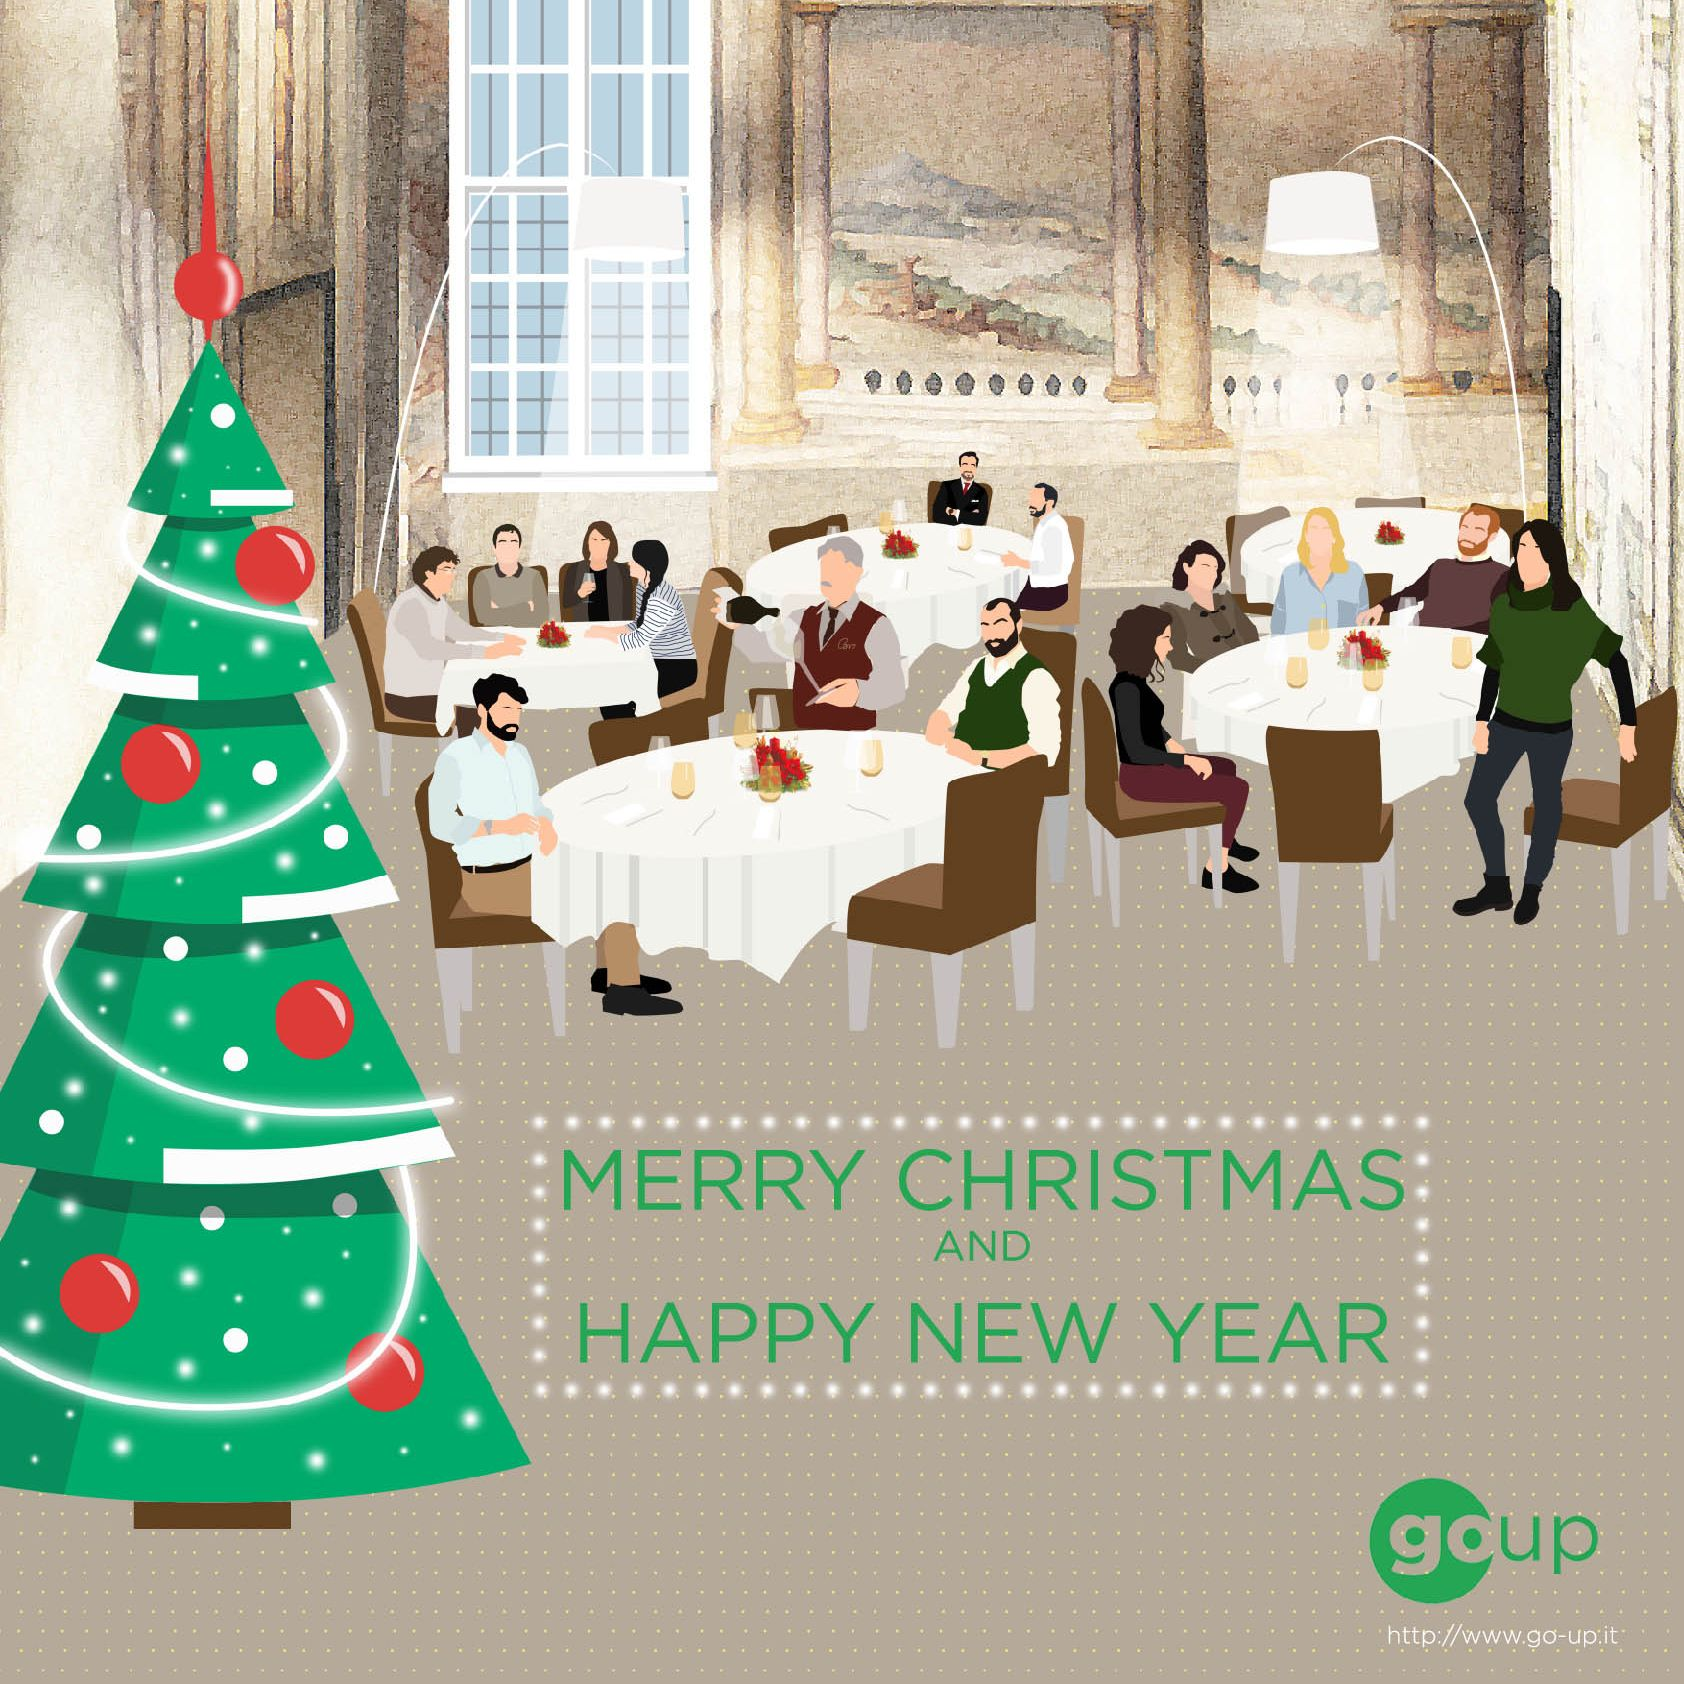 Go-Up Architects wish you a Merry Christmas and a Happy New Year!